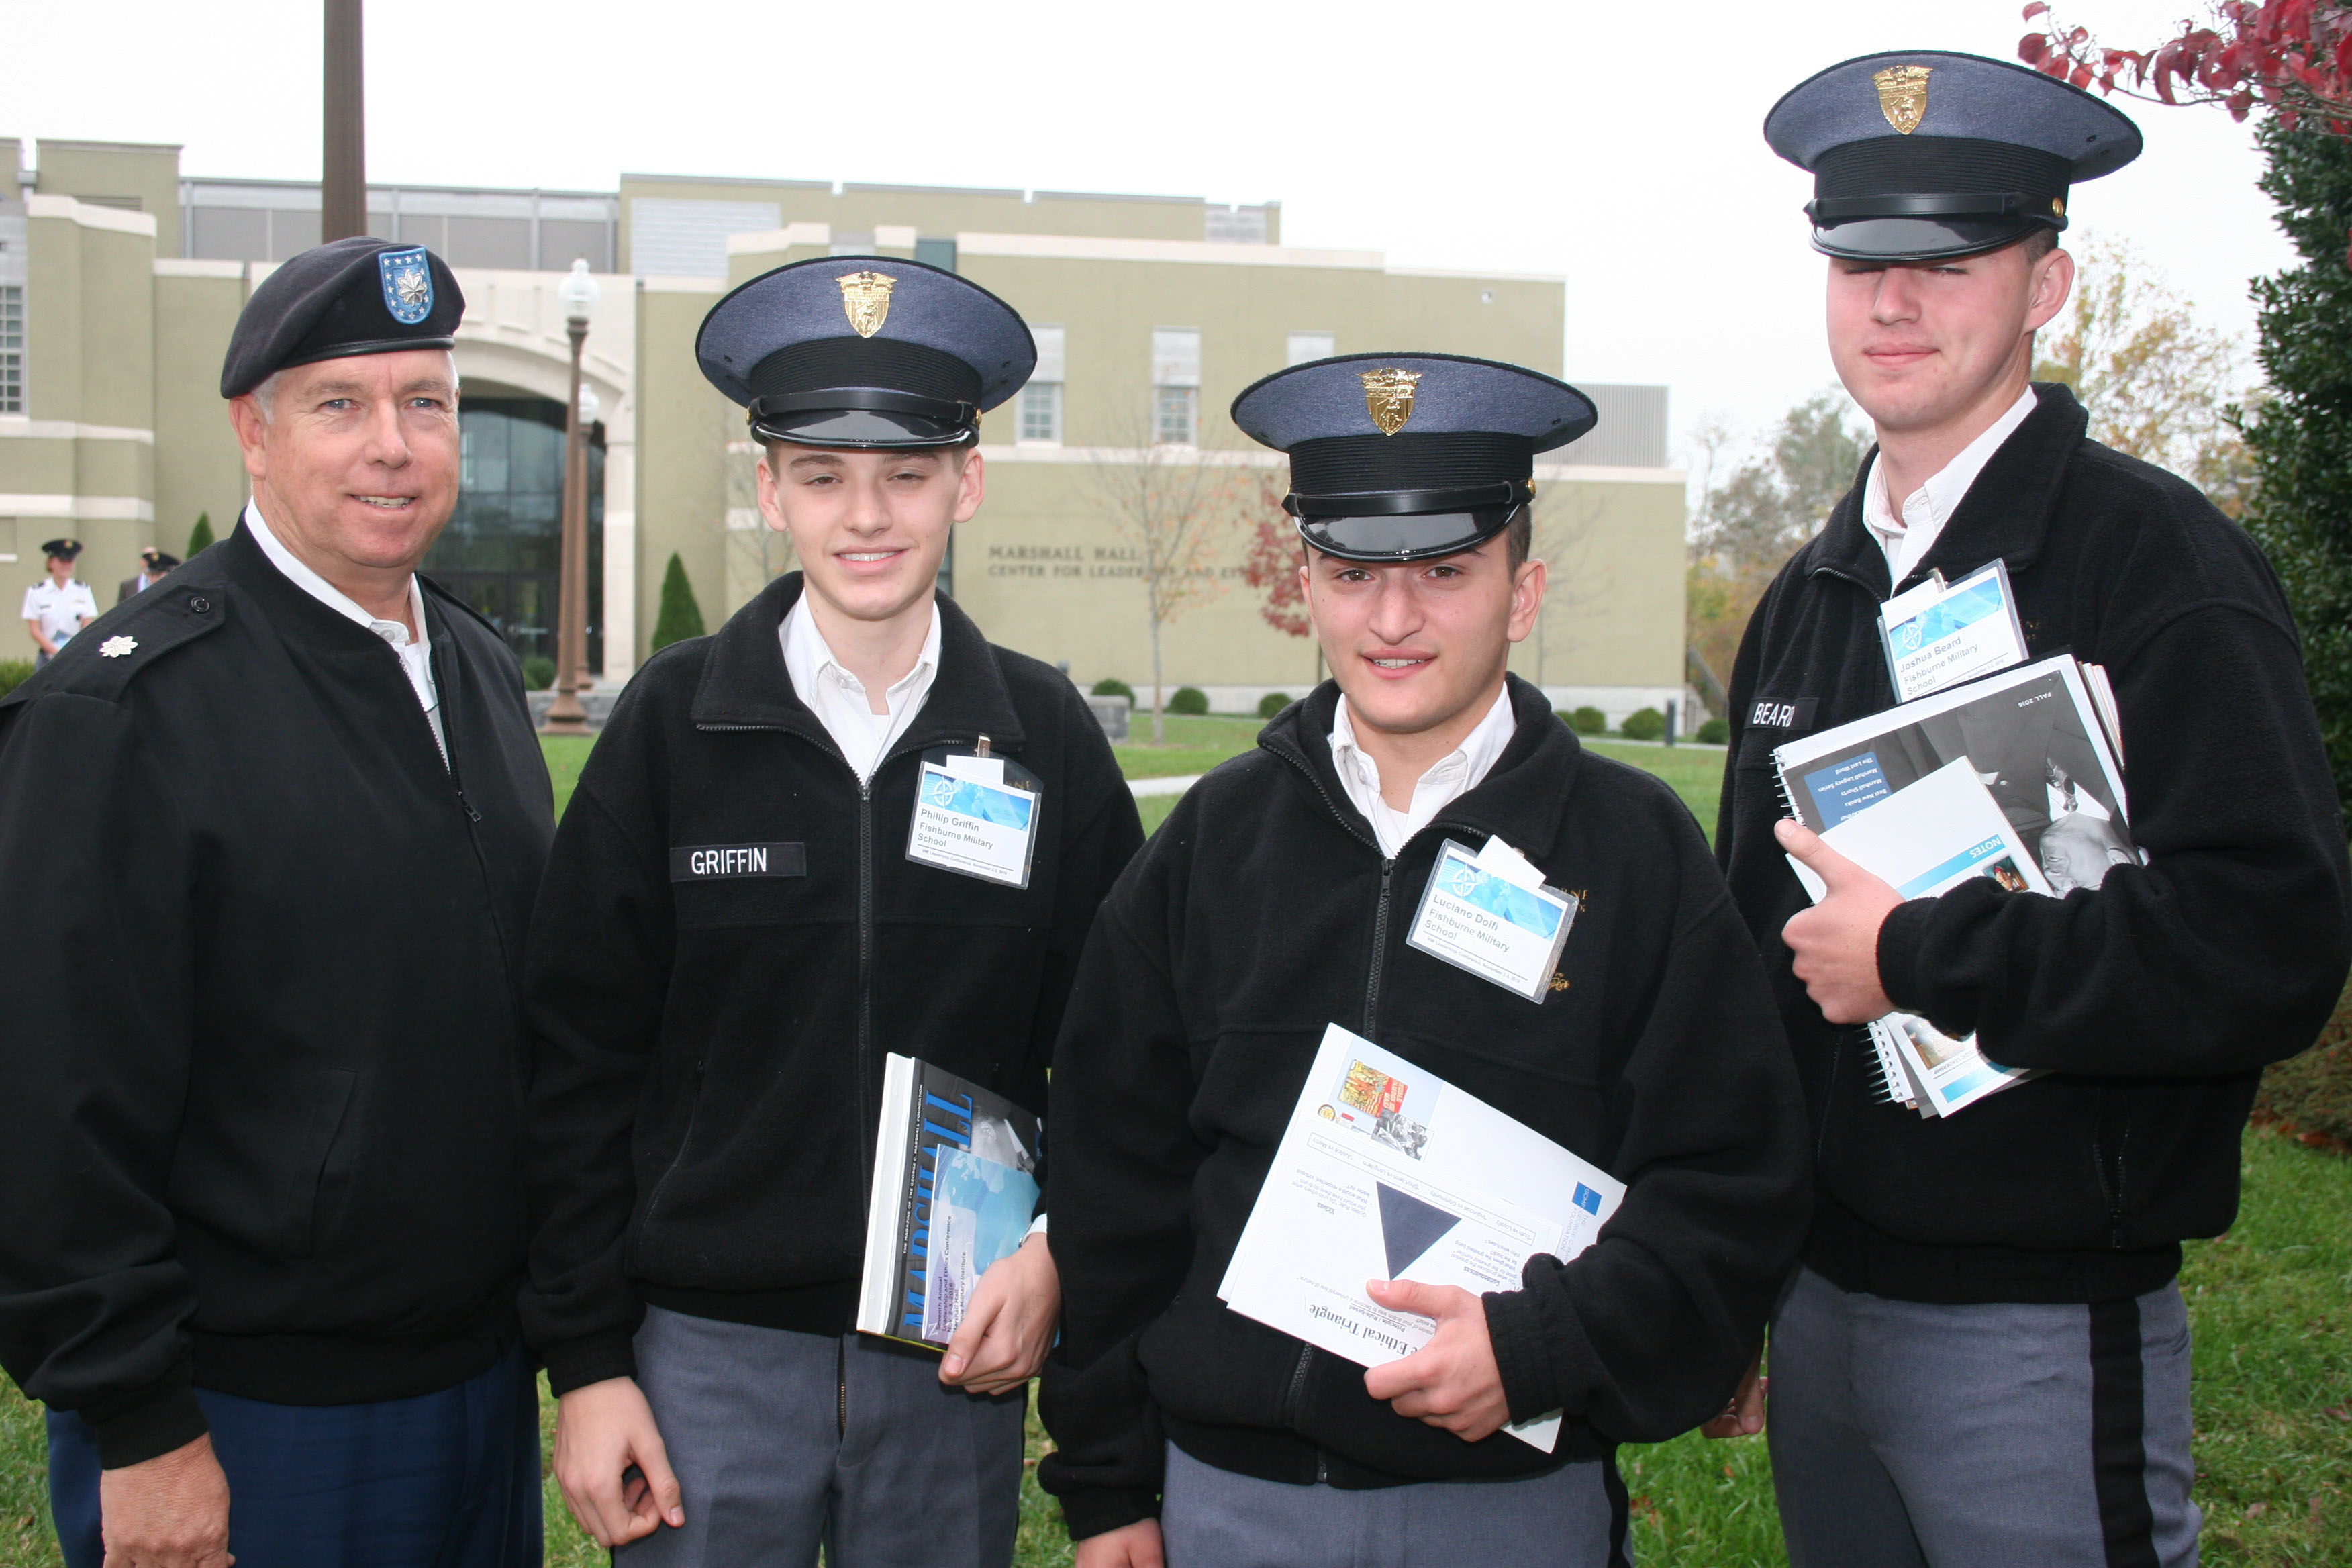 Fishburne Military School Cadets attend Virginia Military Institute Leadership and Ethics Conference